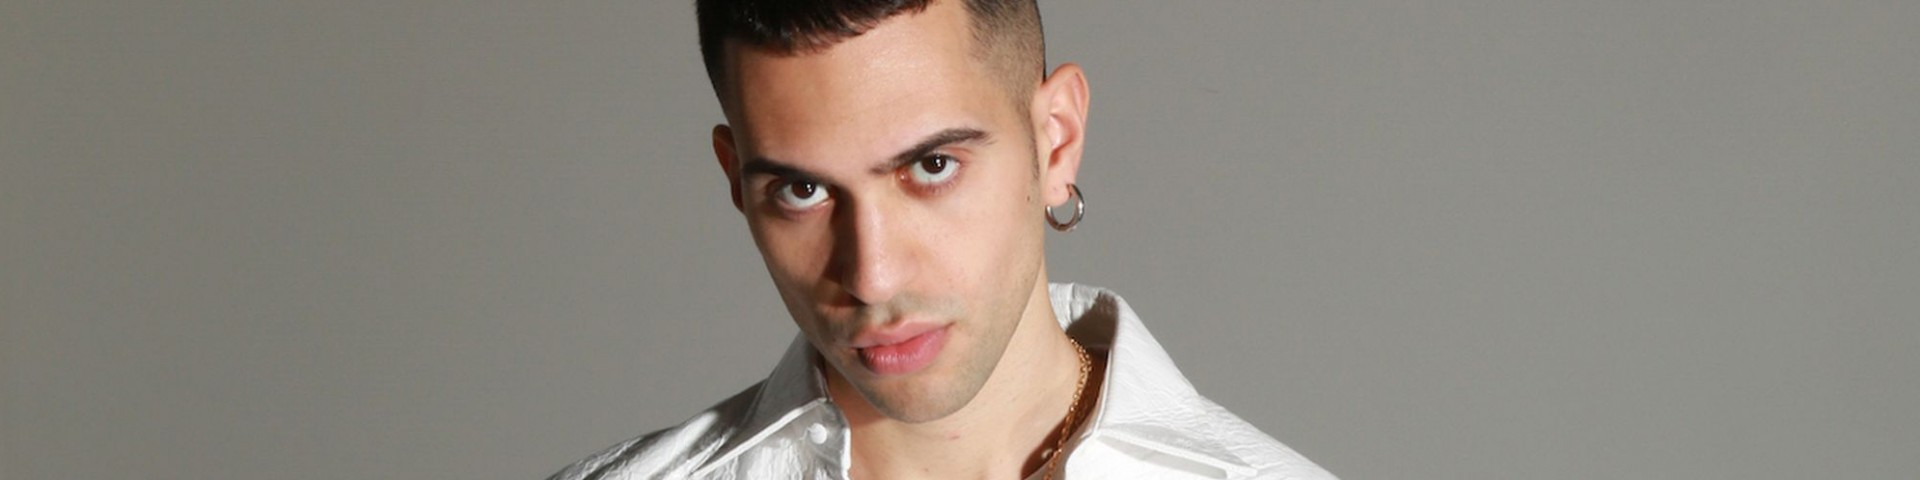 "Il prete fa cantare ""Soldi"" di Mahmood in chiesa - Video virale"